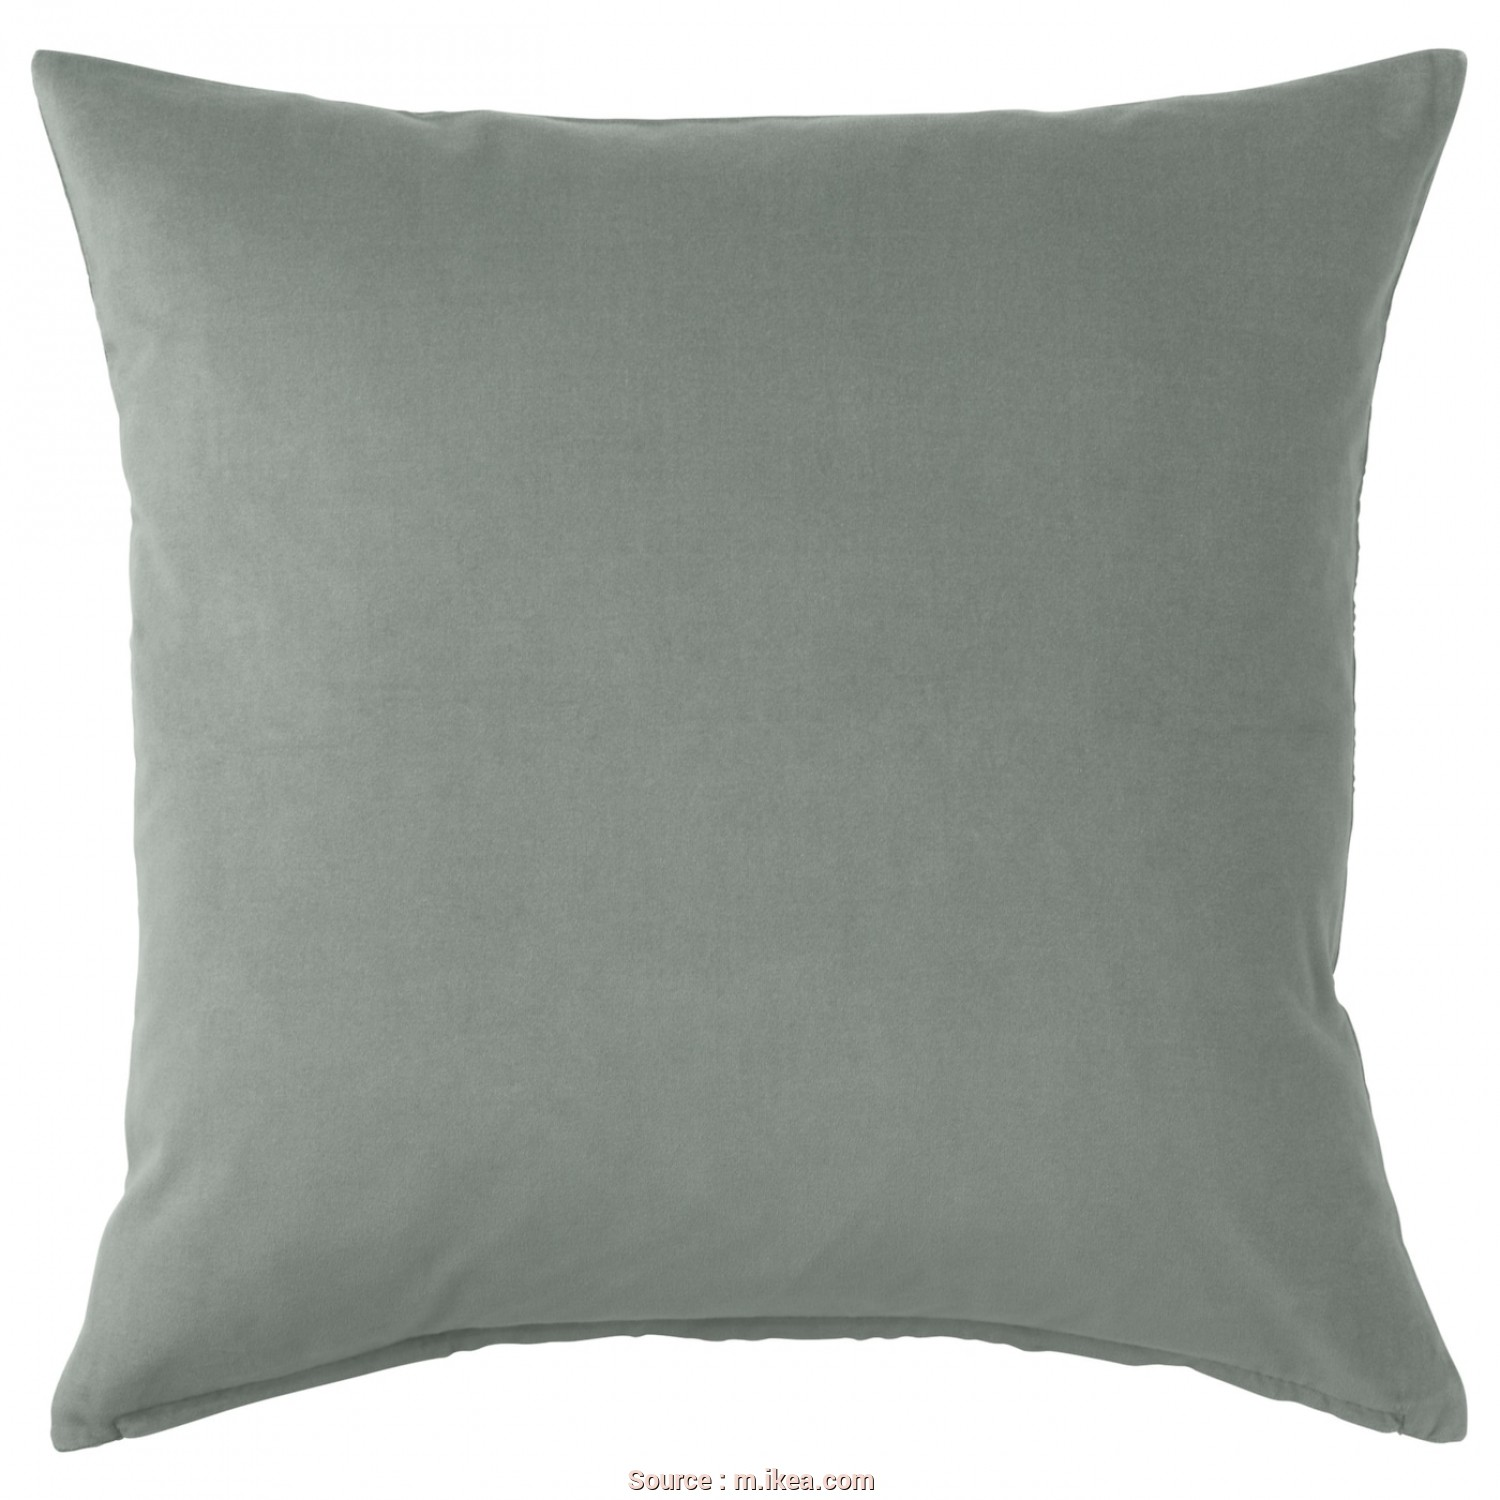 Cuscino Ursula Ikea, Maestoso Cushion Cover SANELA Gray-Green